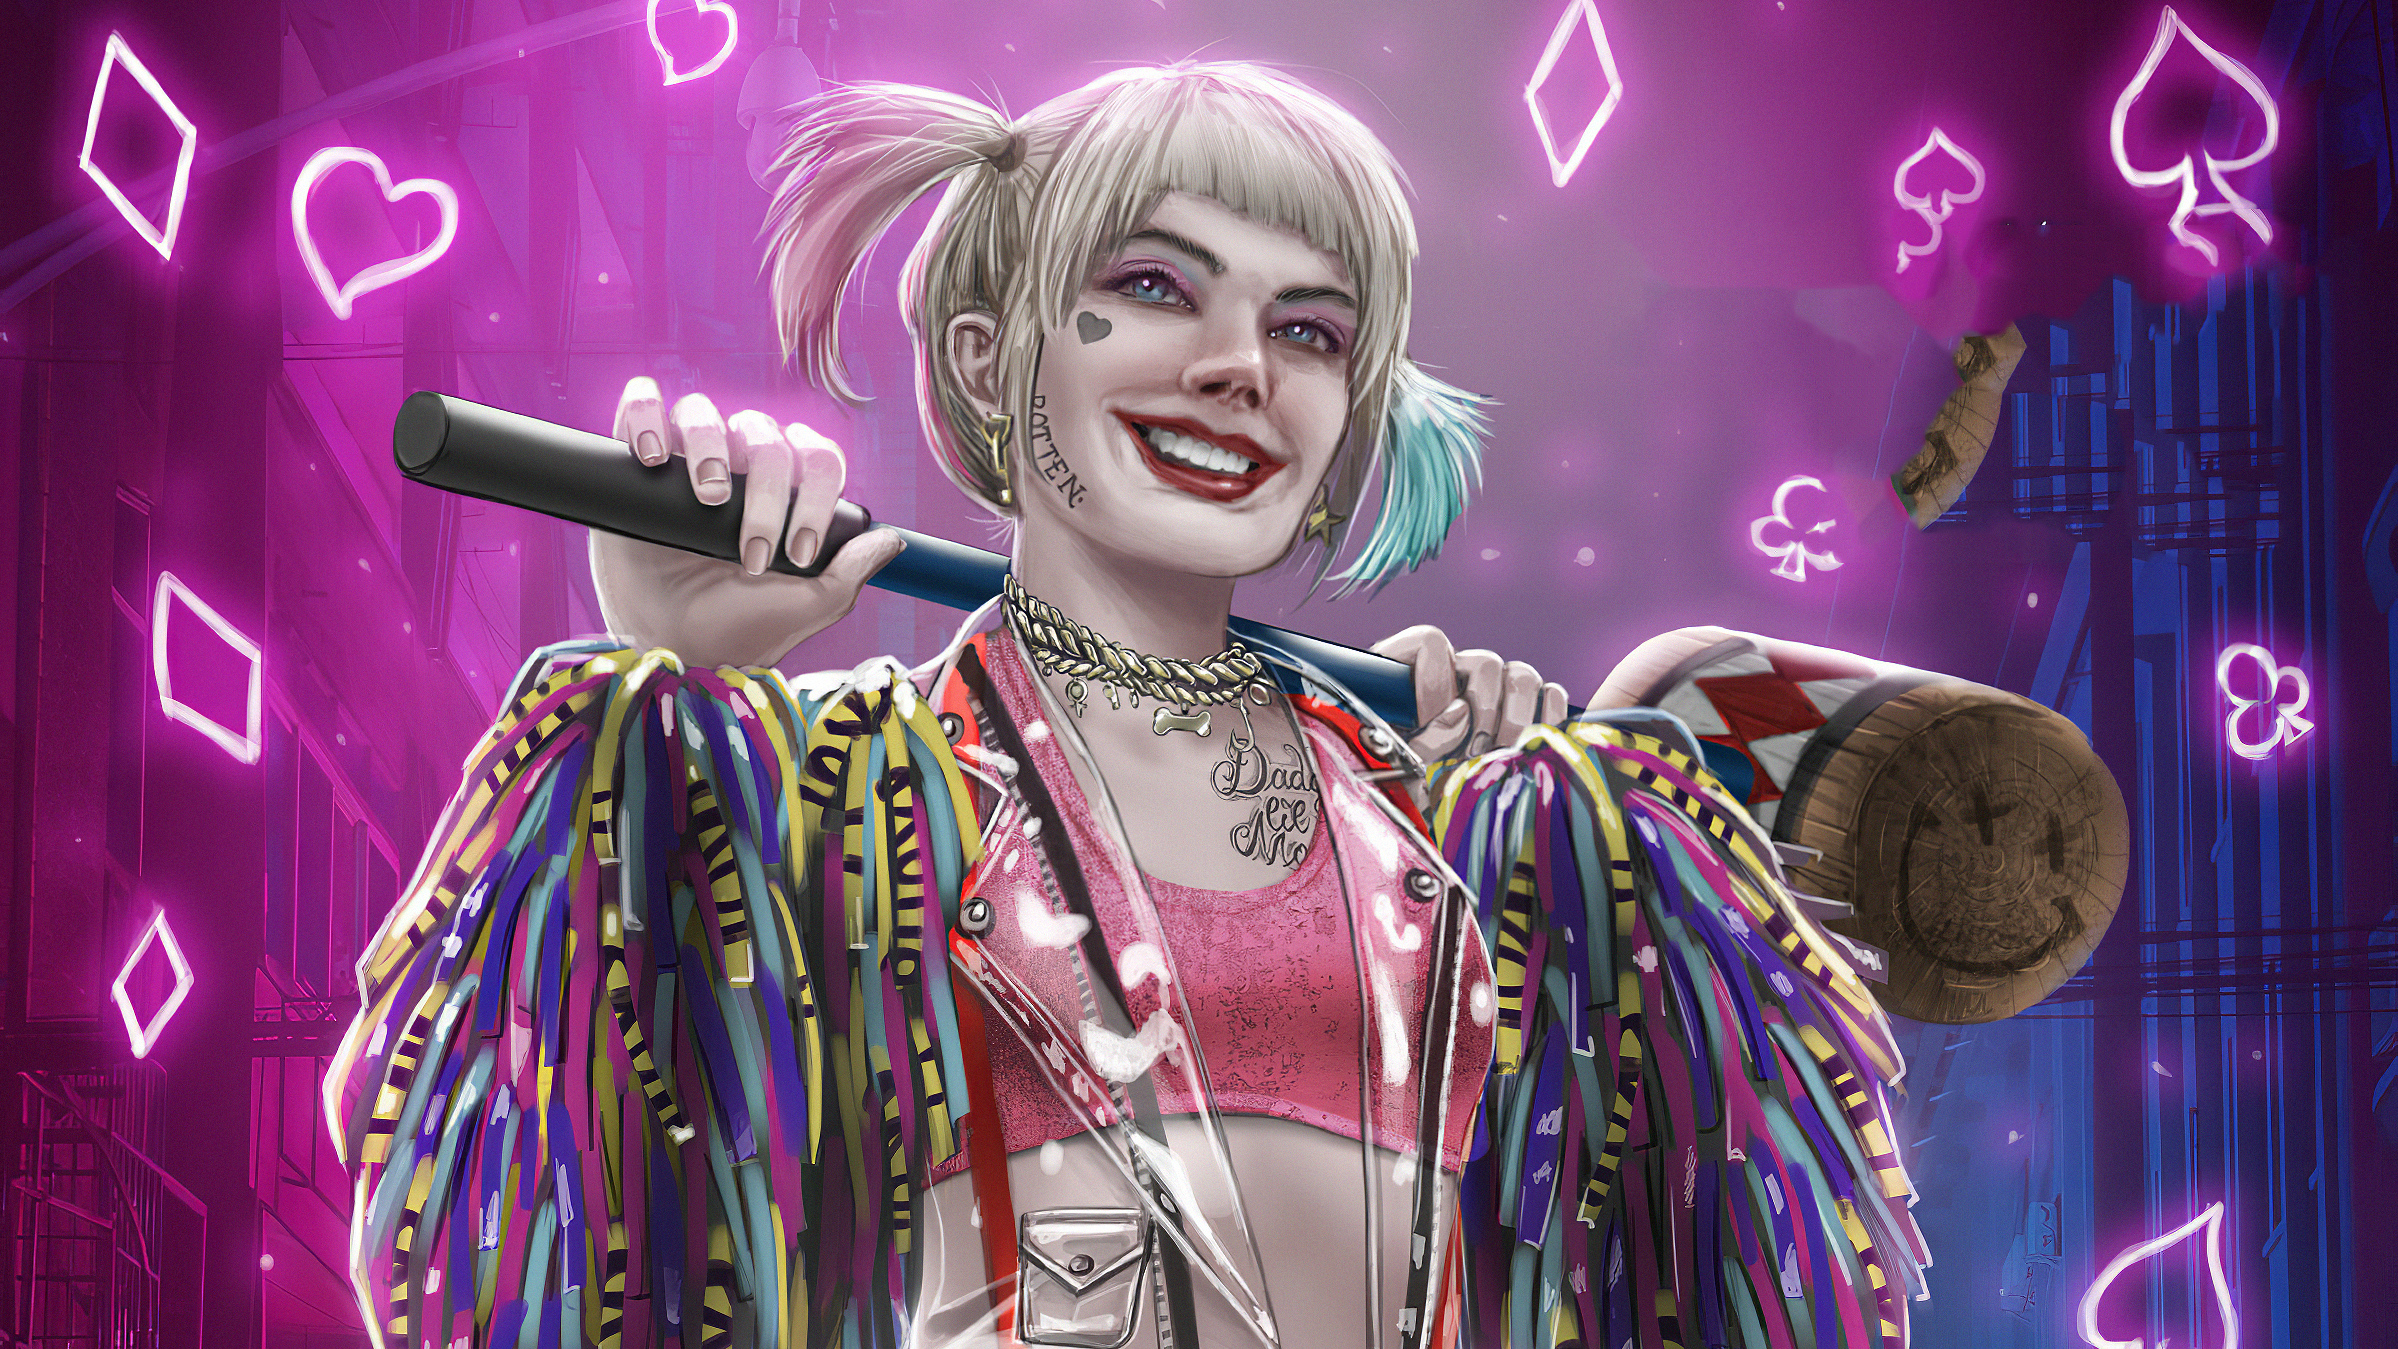 Harley Quinn Hd Wallpaper Background Image 2398x1349 Id 1056293 Wallpaper Abyss